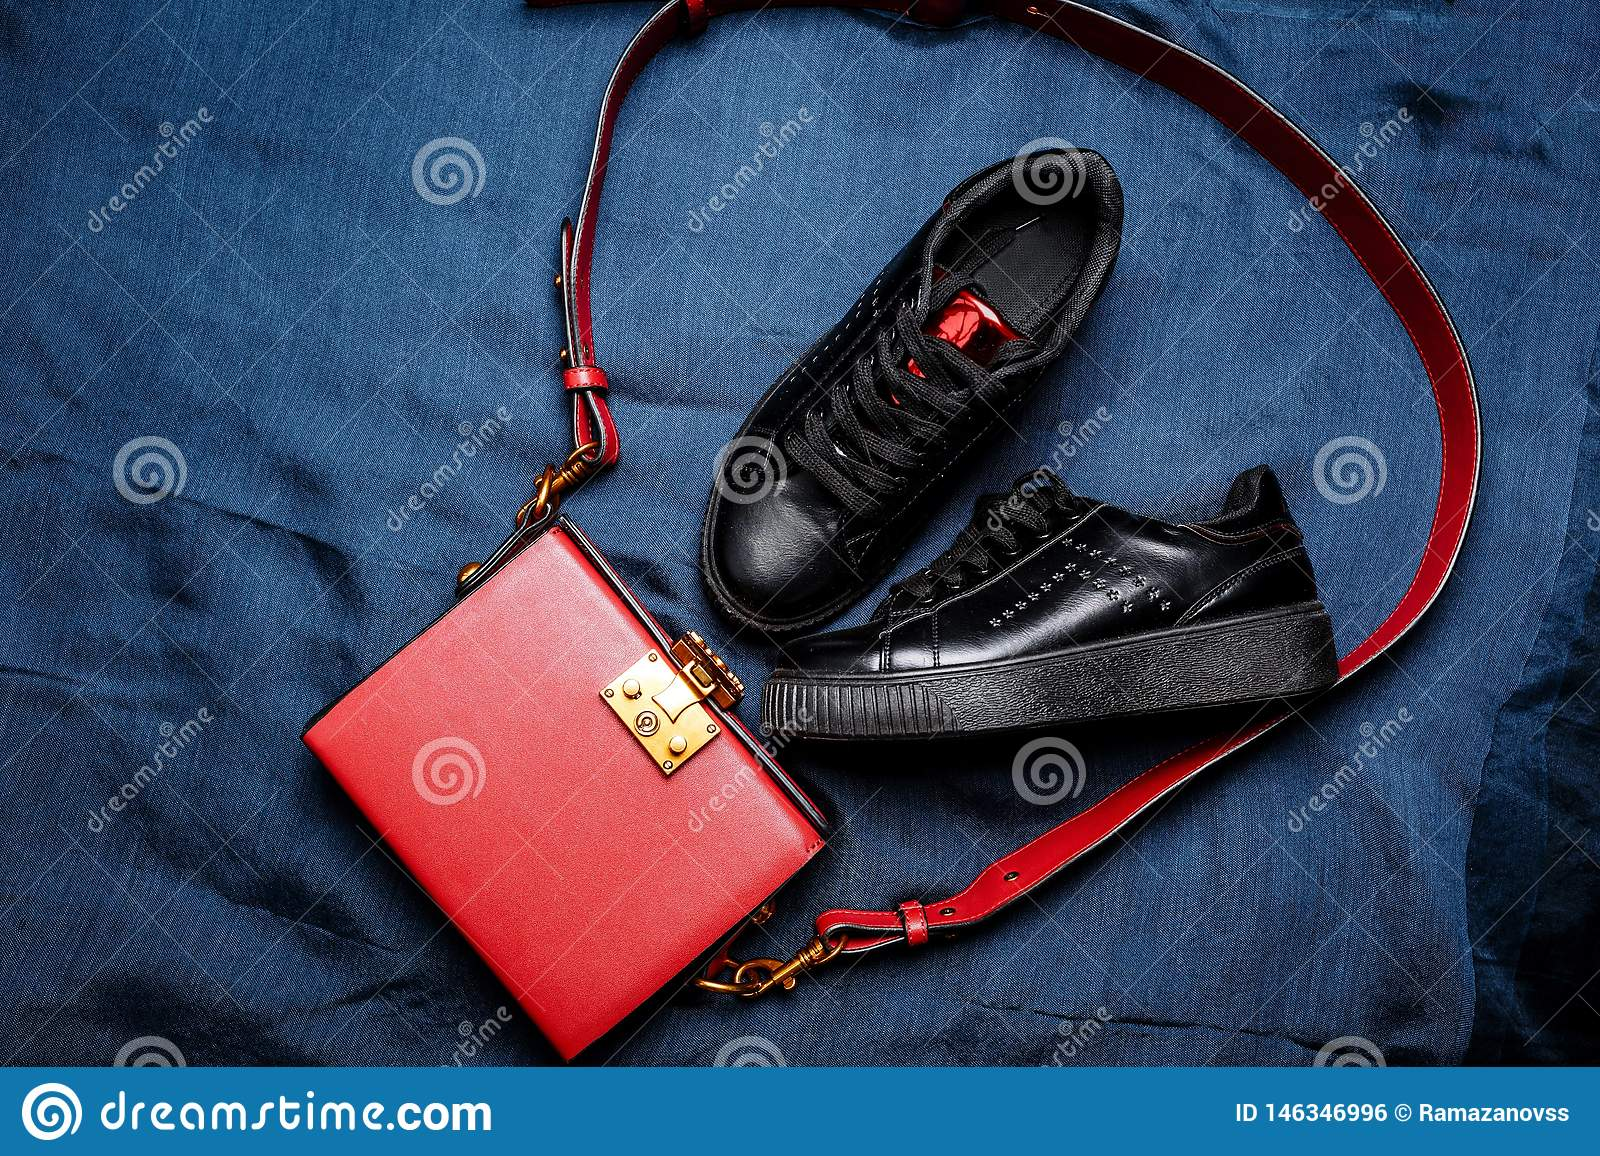 Black sneakers with red tongues and a red bag with a golden lock on a blue woven background